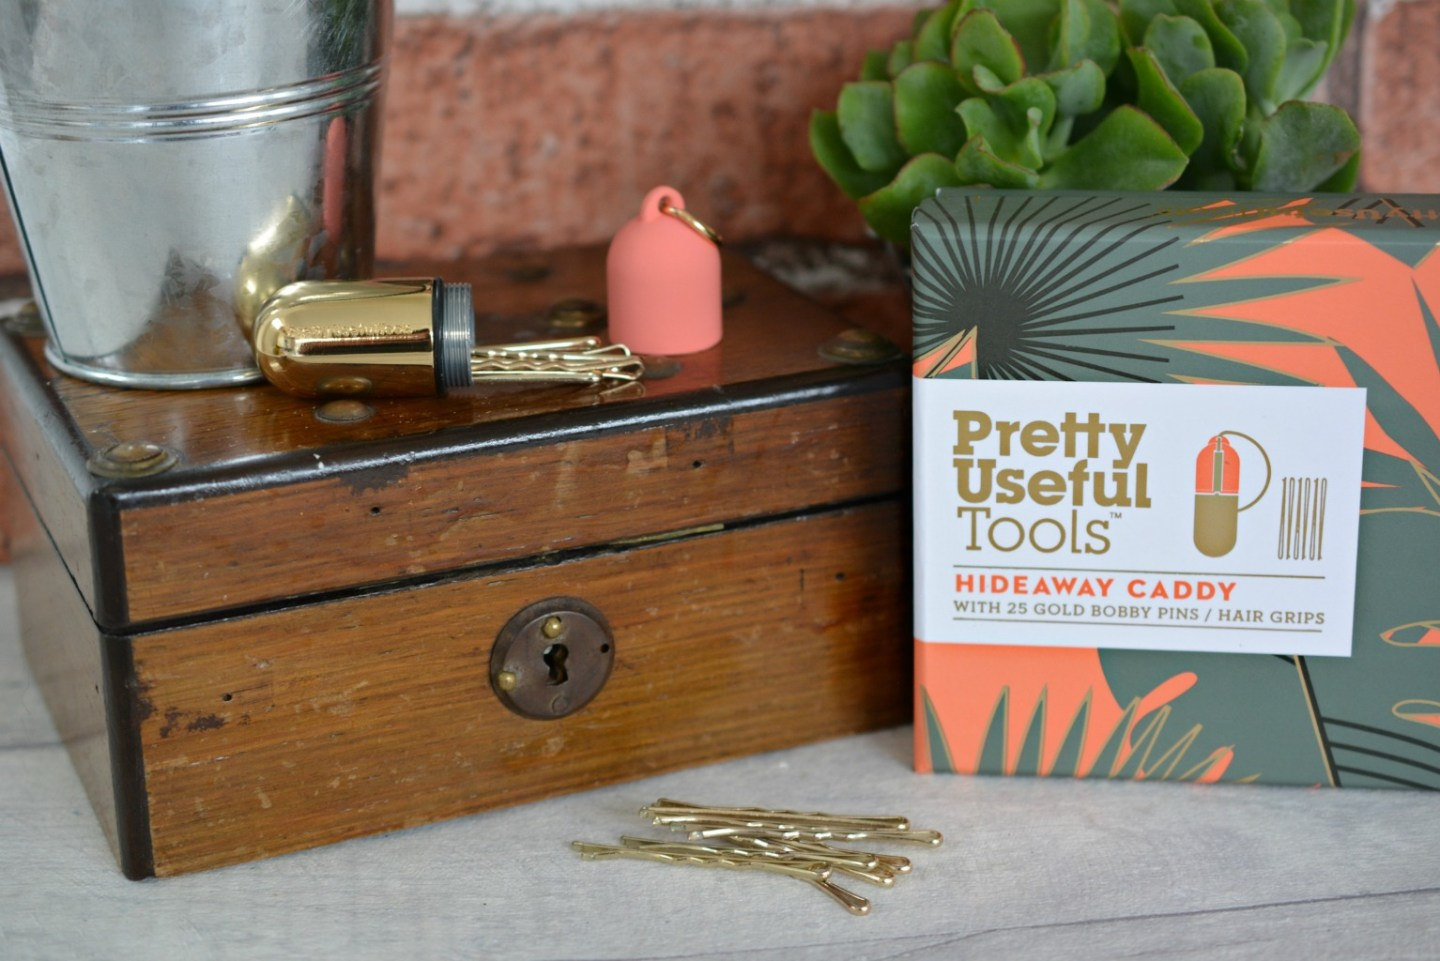 A Pretty Useful Bobby Pin Caddy | Pretty Useful Tools Hideaway Caddy from Prezzybox